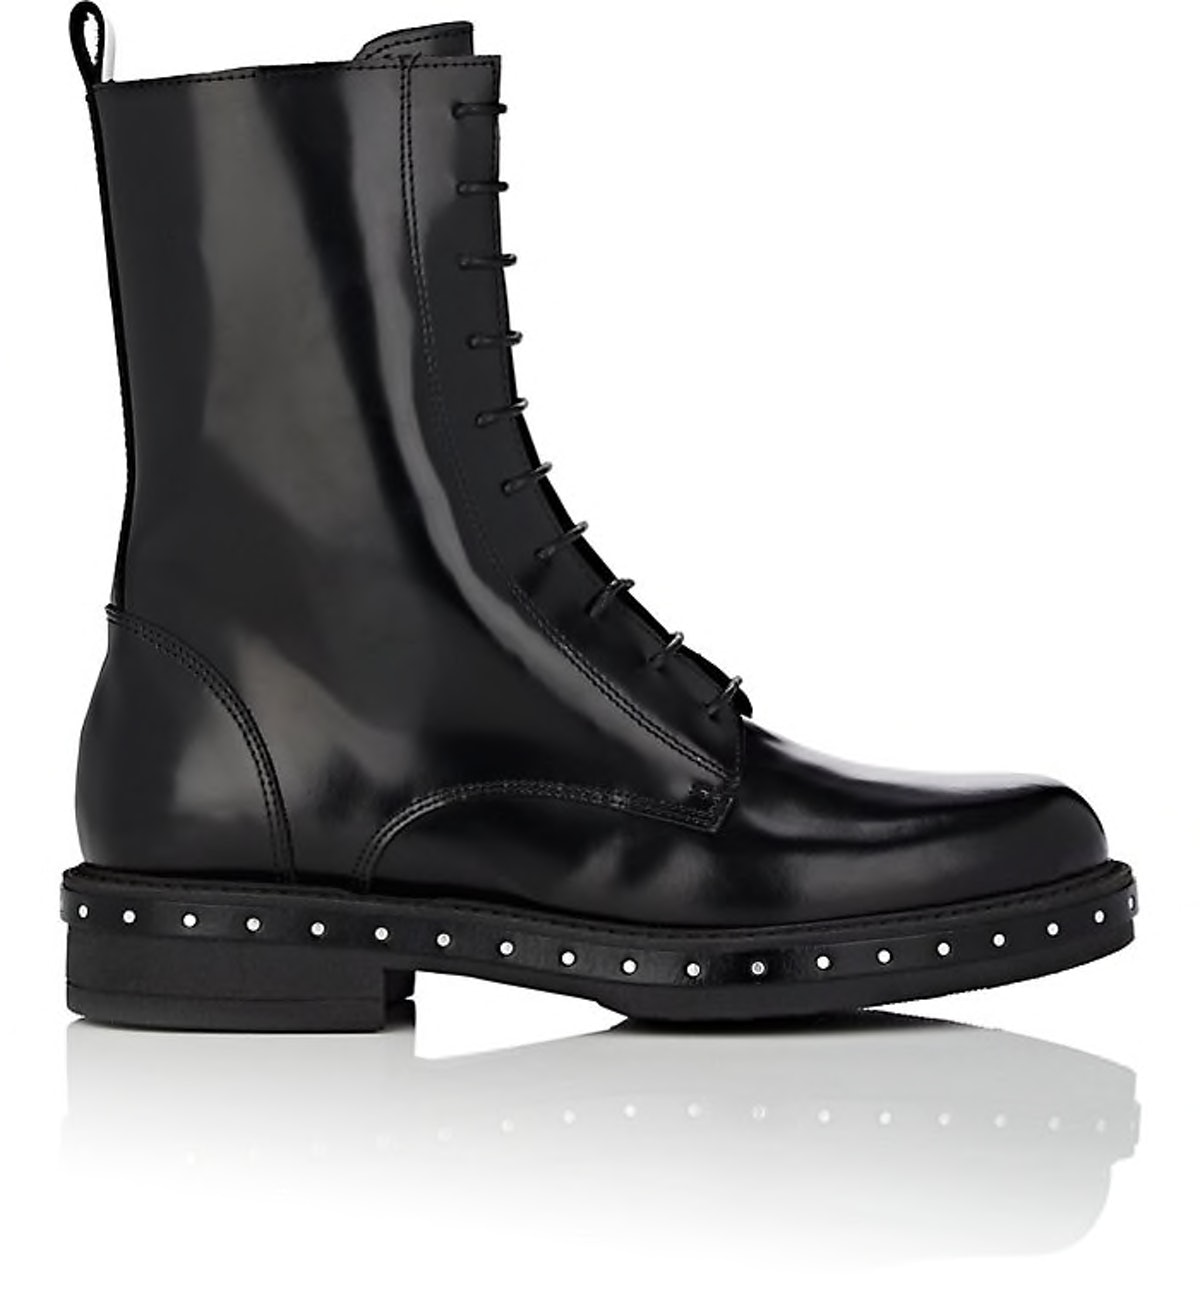 Stud-Detailed Spazzalato Leather Combat Boots